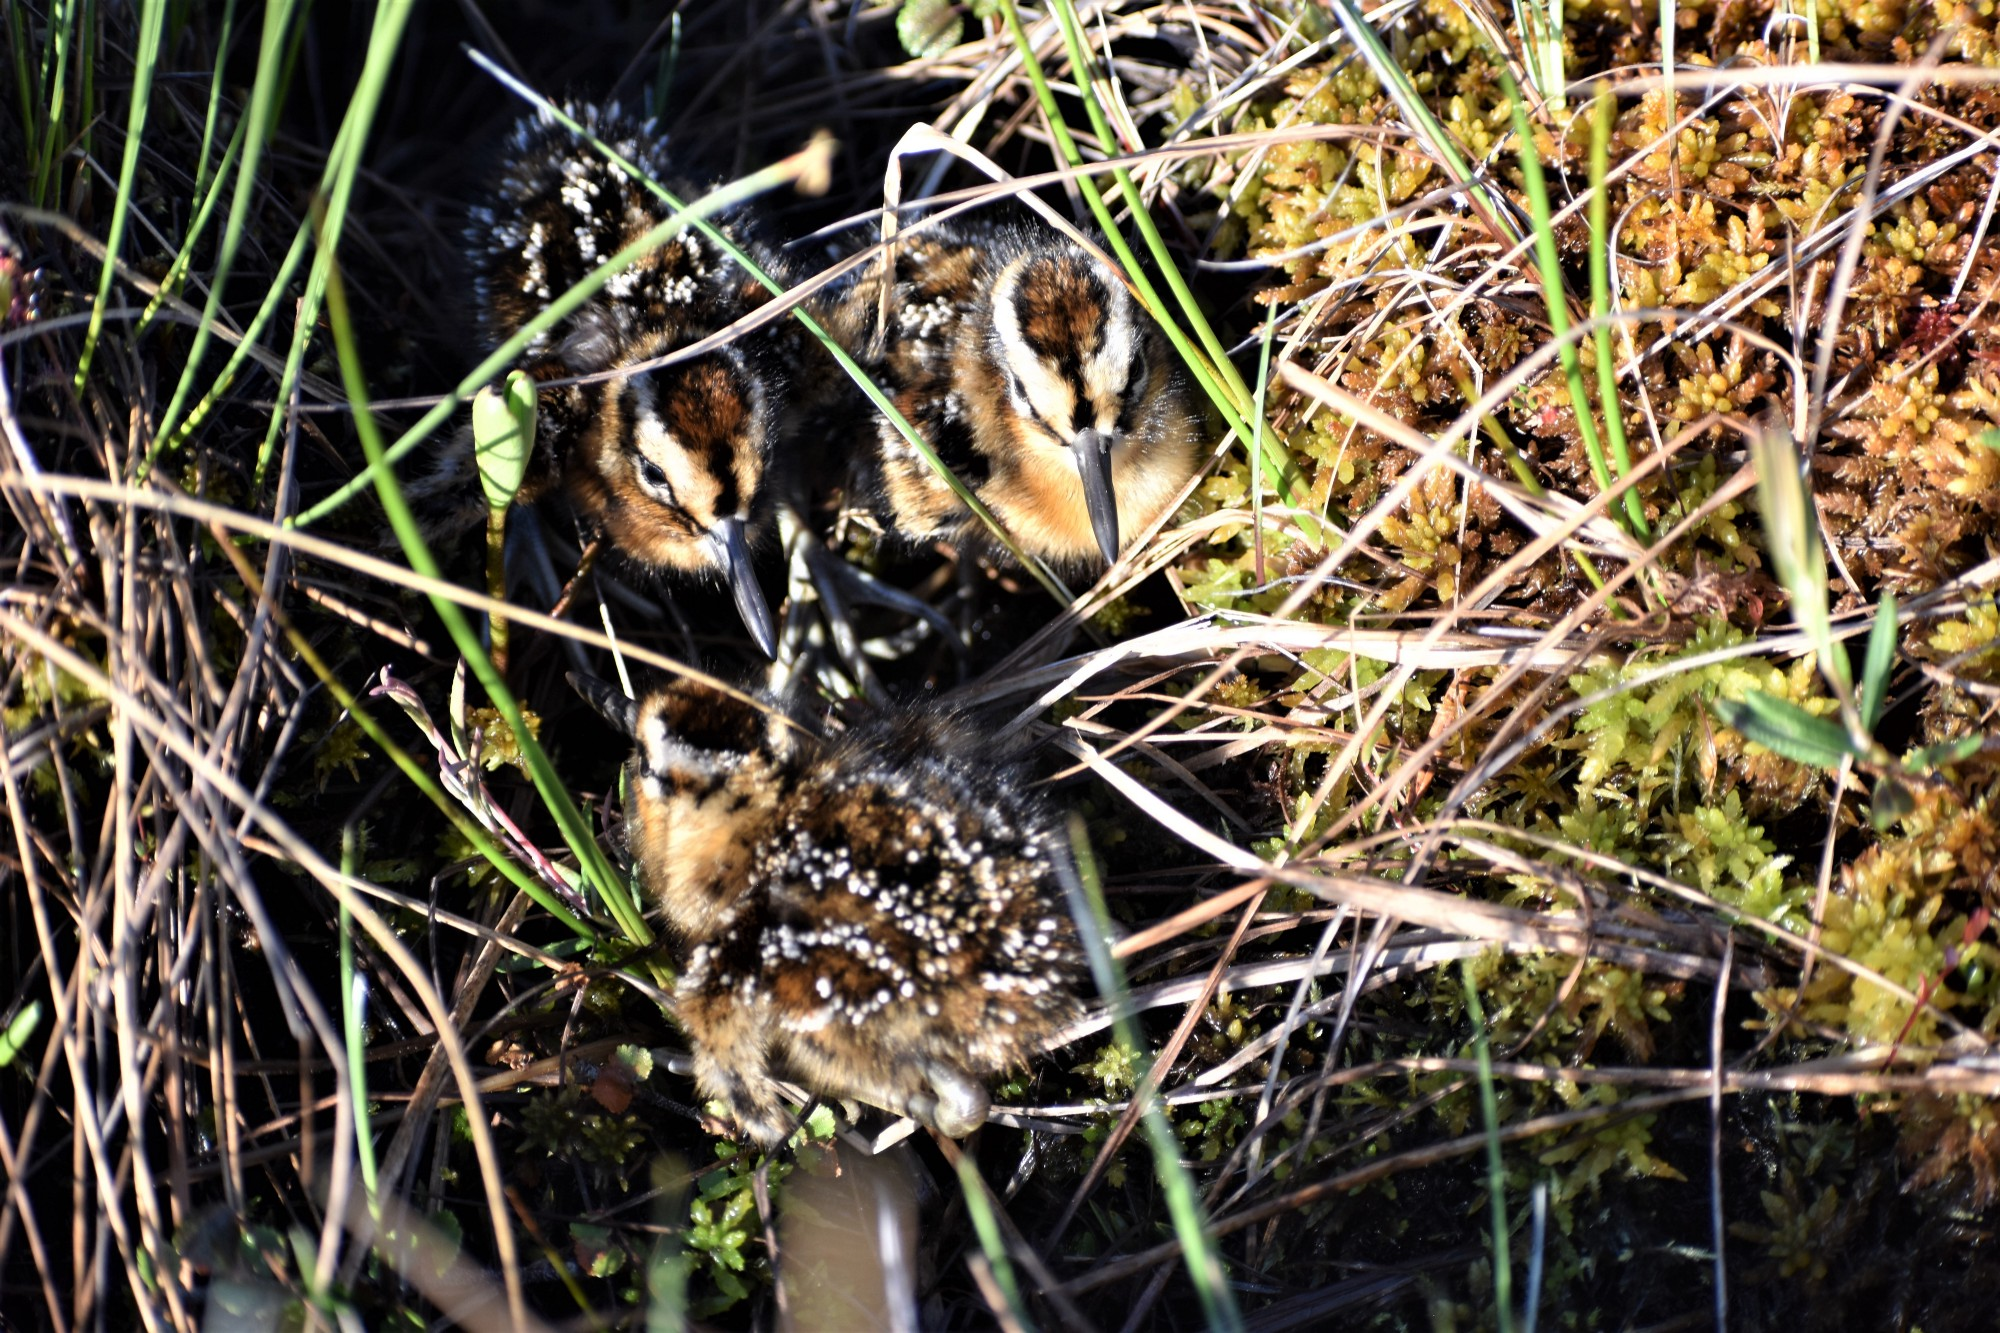 Dowitcher chicks at the edge of a tundra pond